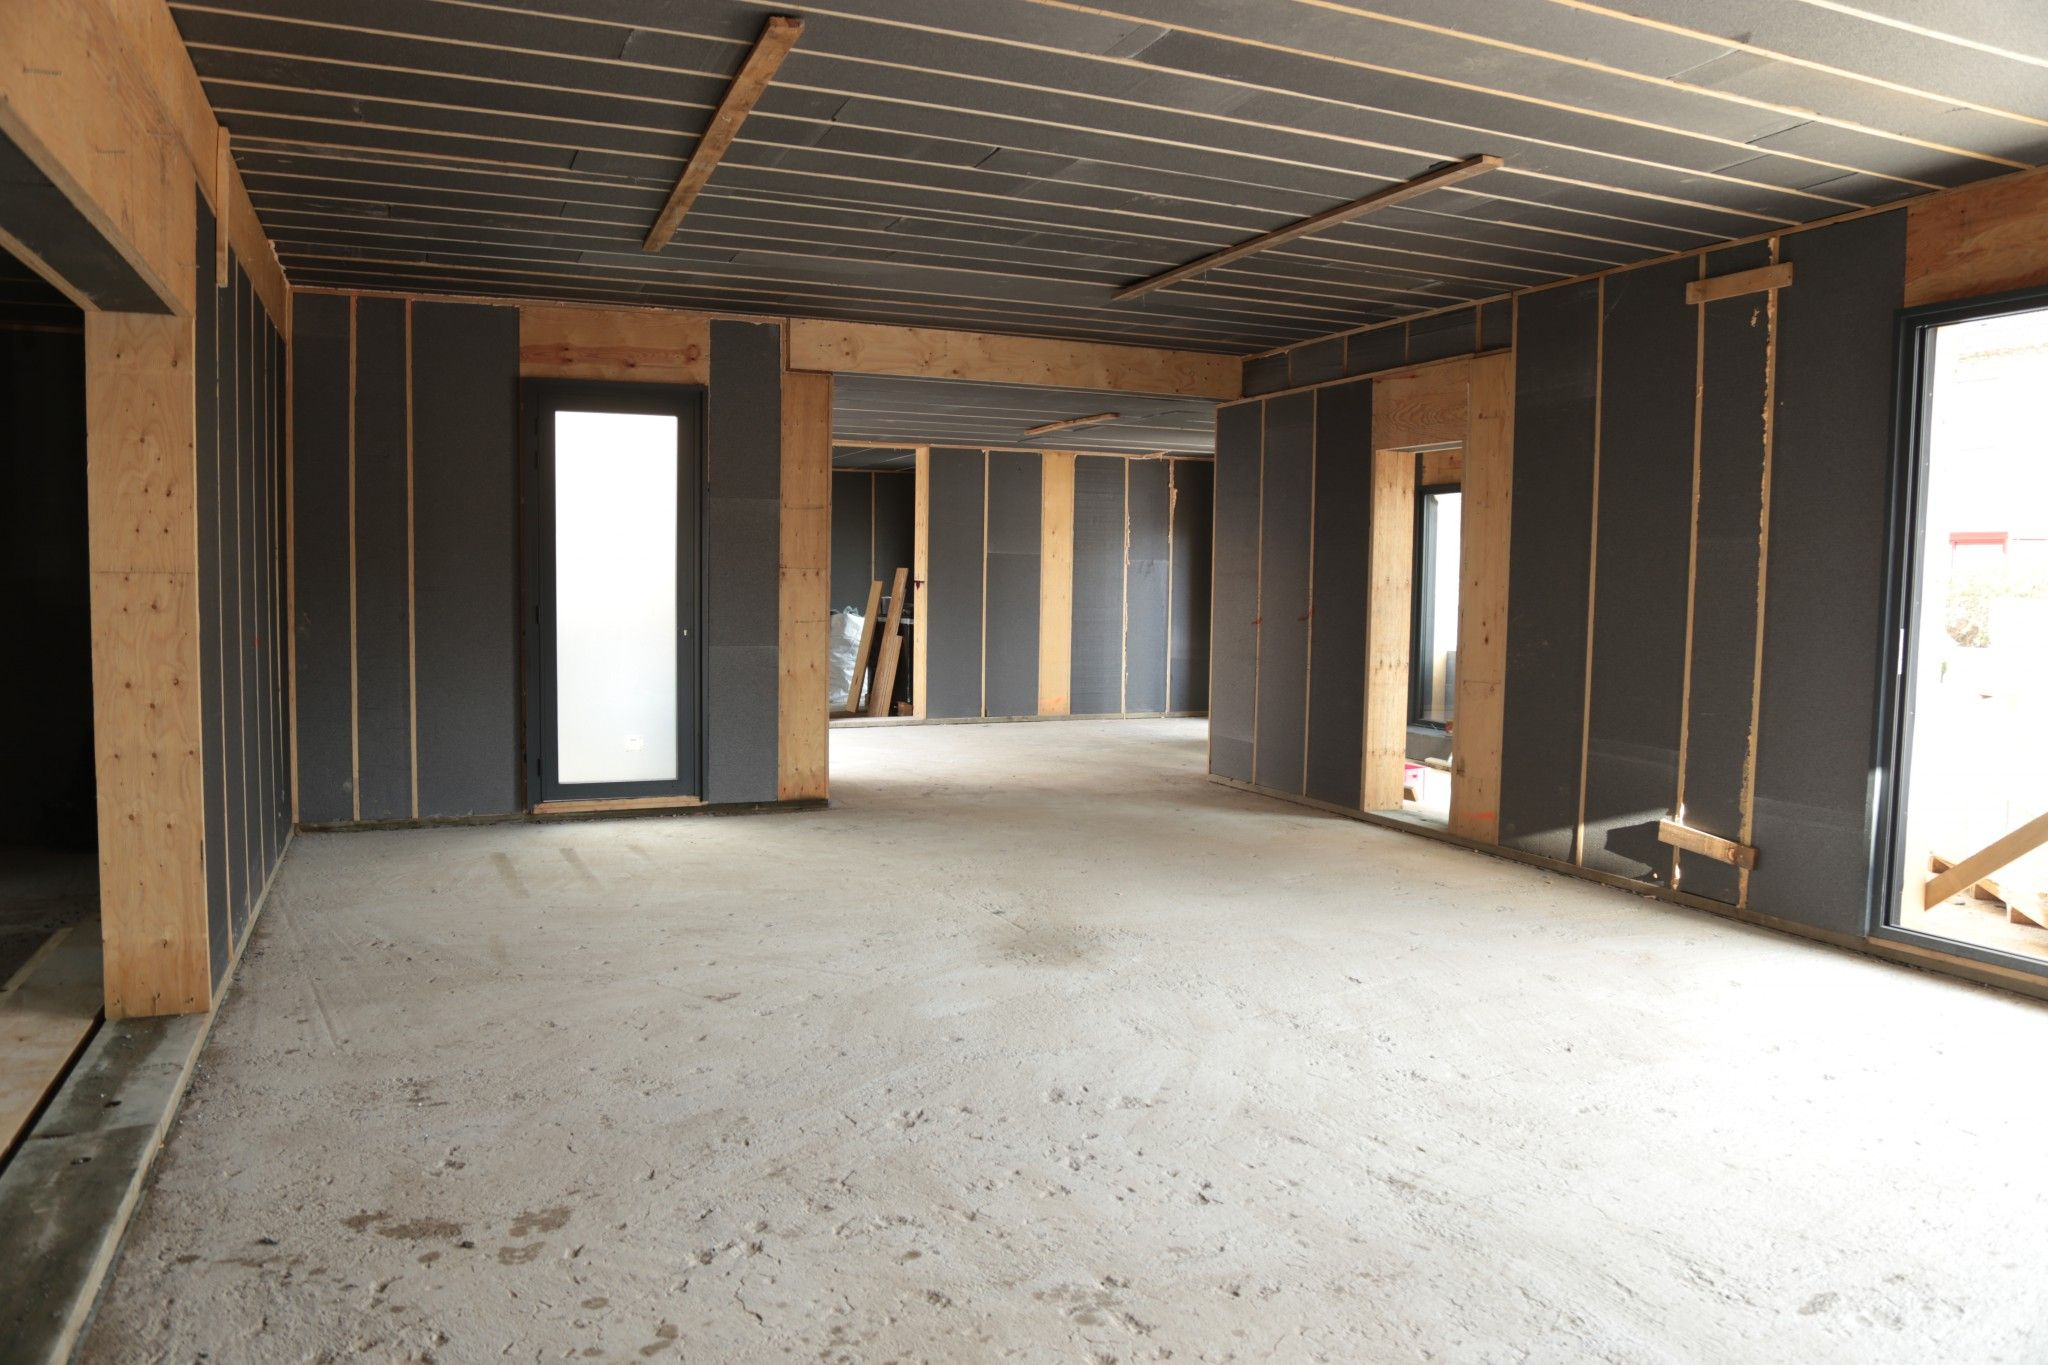 Maisons 300 m² en Champagne-Ardenne | PopUp House | Pop Up ...